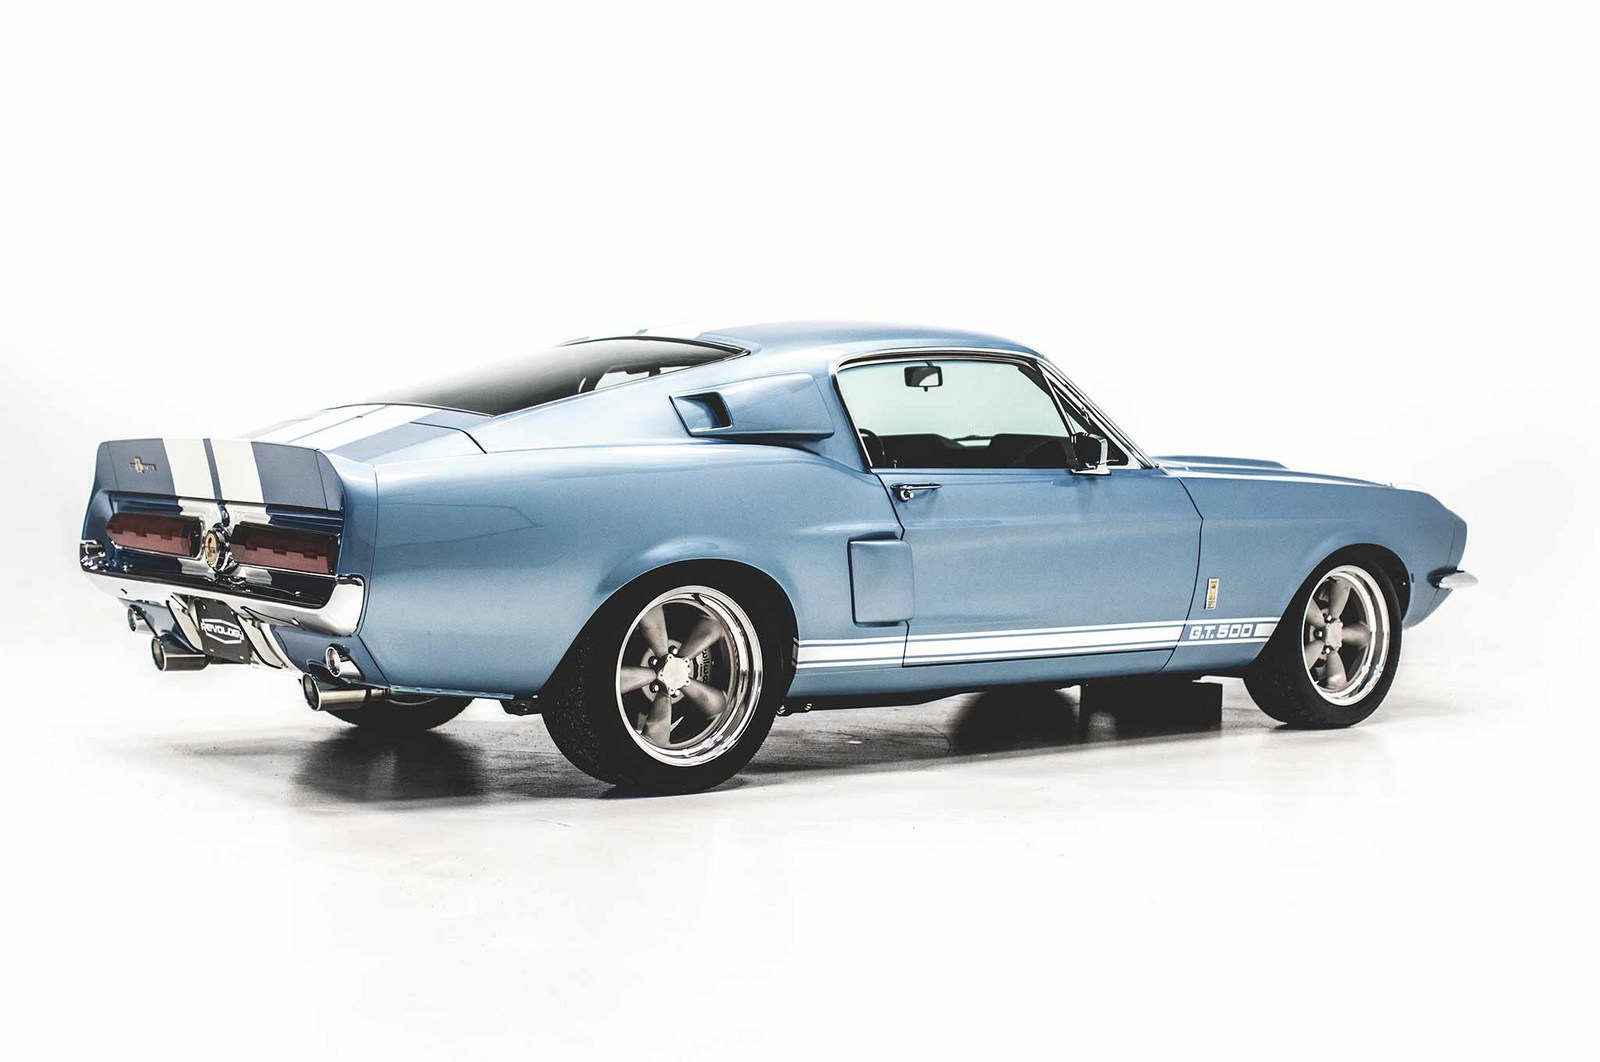 Revology's 1967 Shelby GT500 Replica Costs A Whopping $219,000